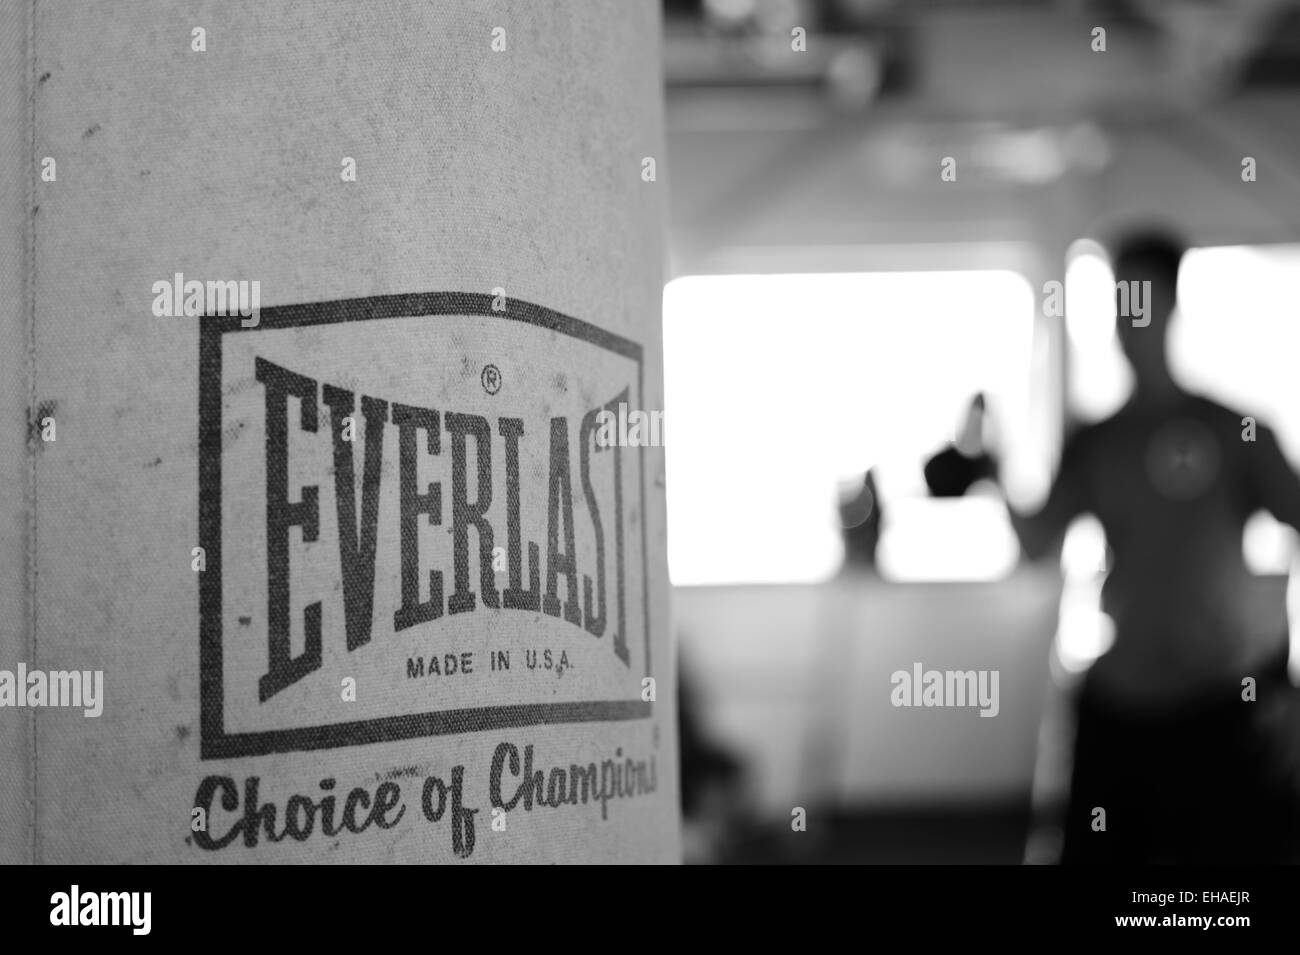 Everlast punching bag at the gym - Stock Image